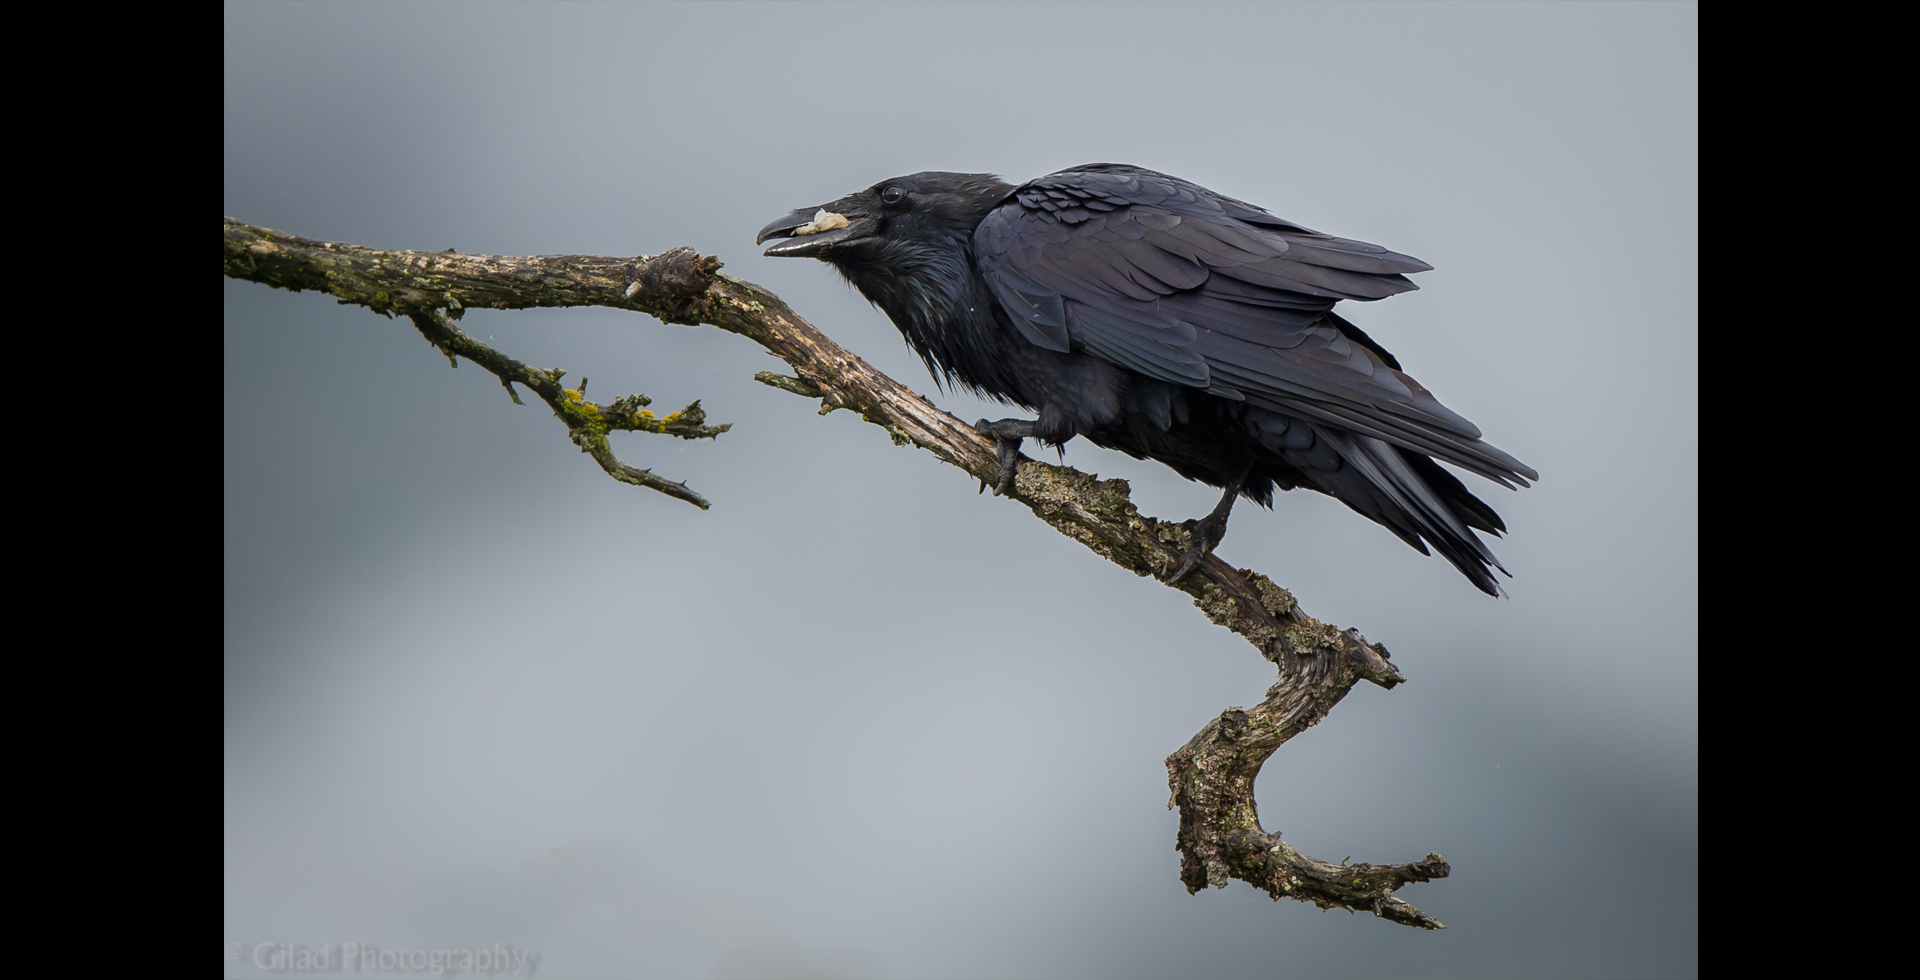 A raven on a tree branch in Alaska